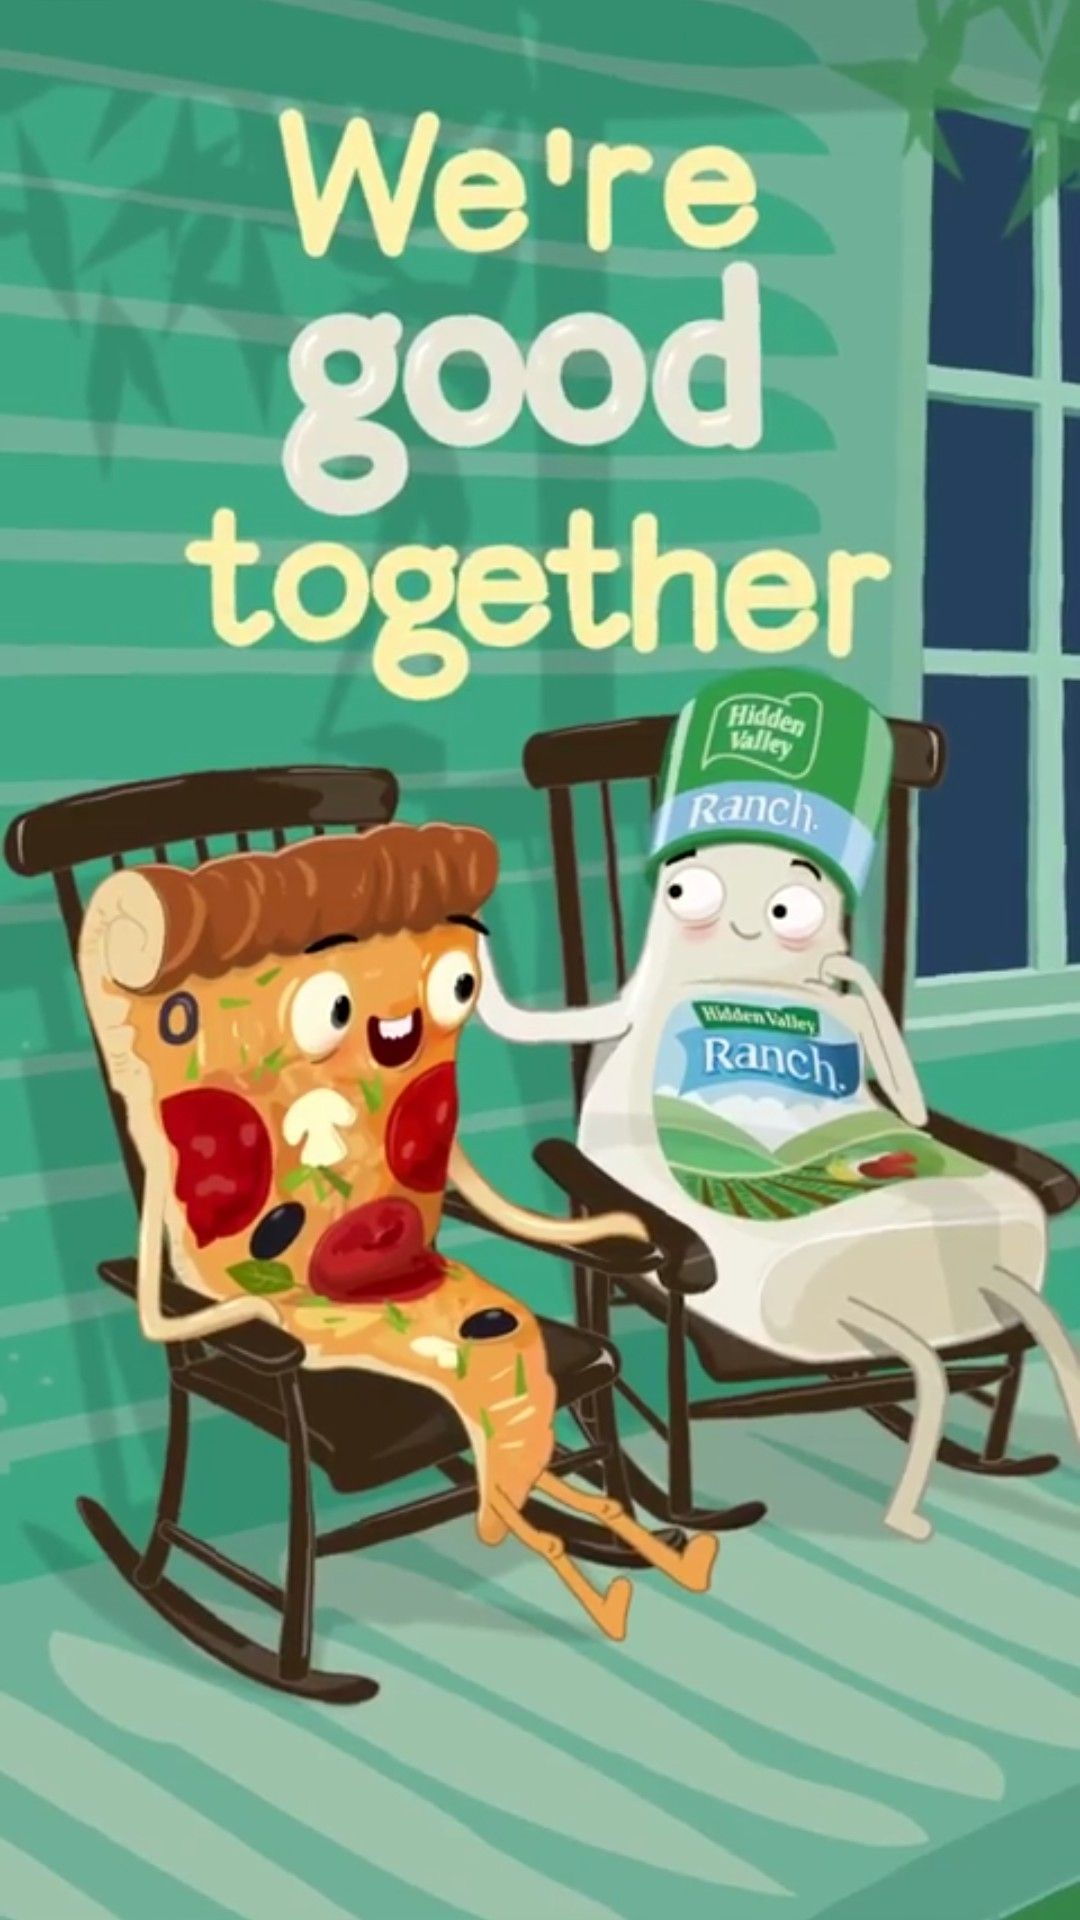 We Go Together Perfectly Dibs On Being The Ranch Just Like Our Cartons Of Ranch In The Basement Cute Puns Funny Puns Funny Food Puns